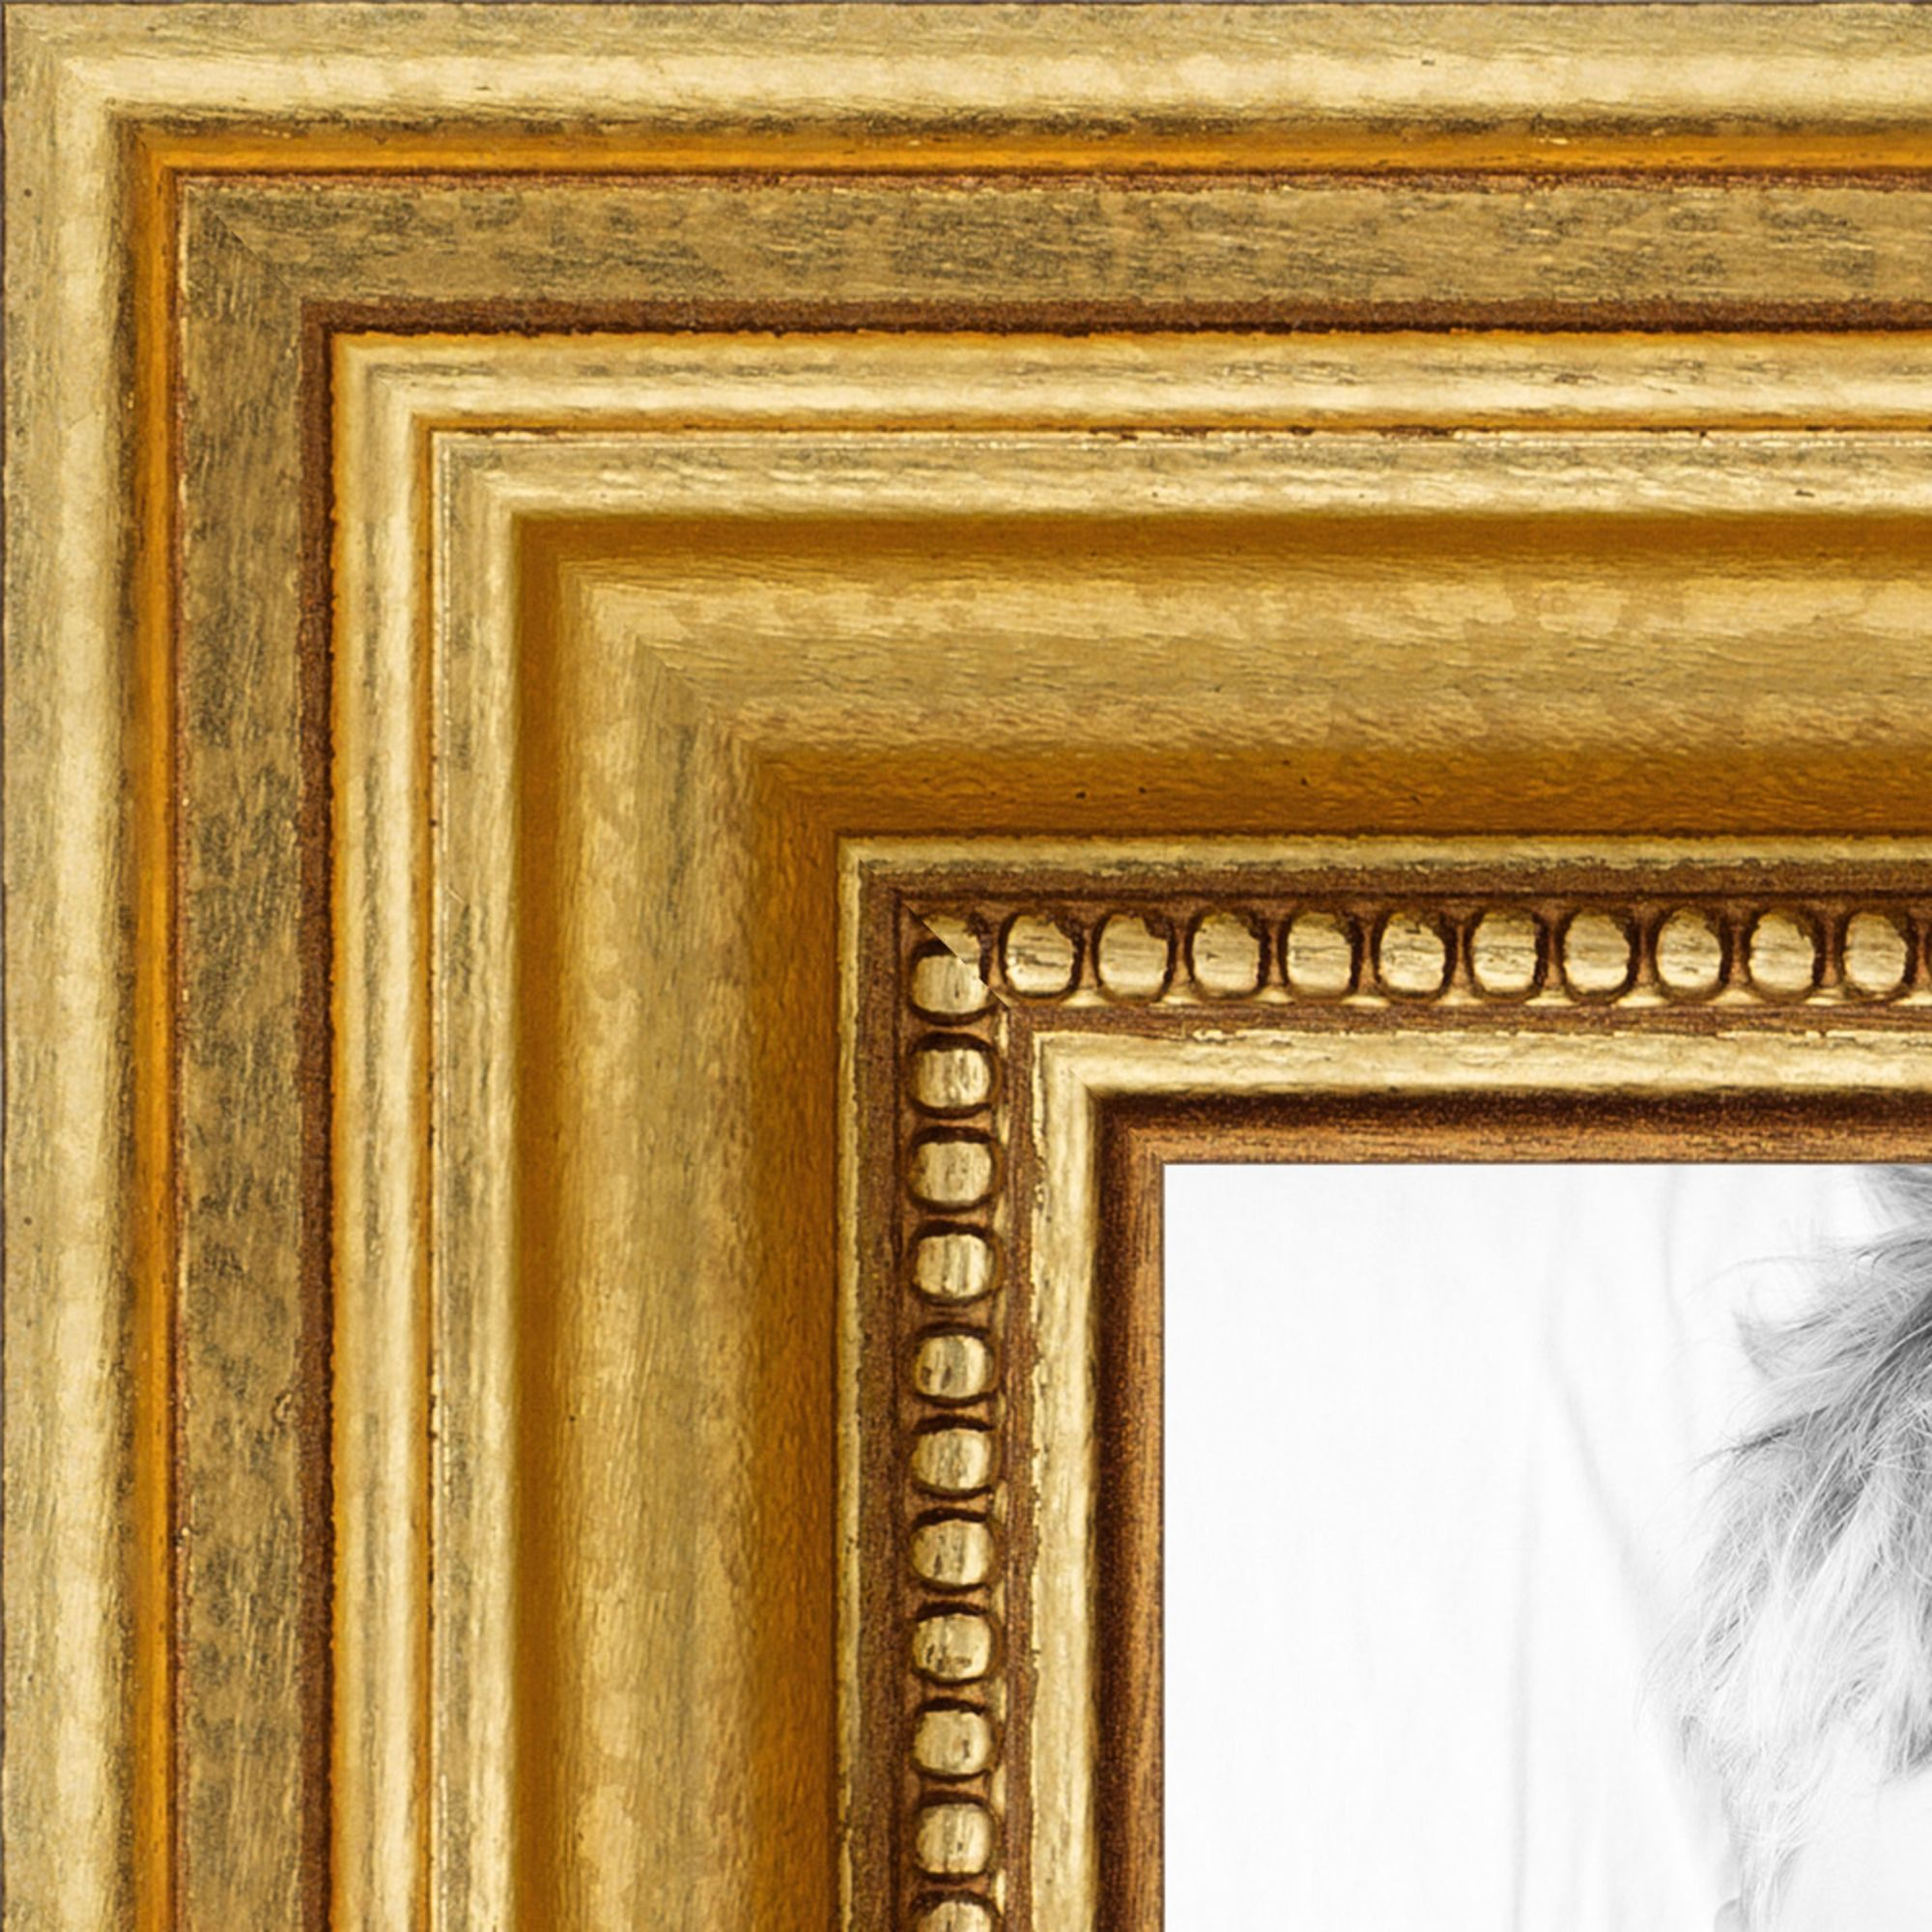 8 5x14 inch gold picture frame